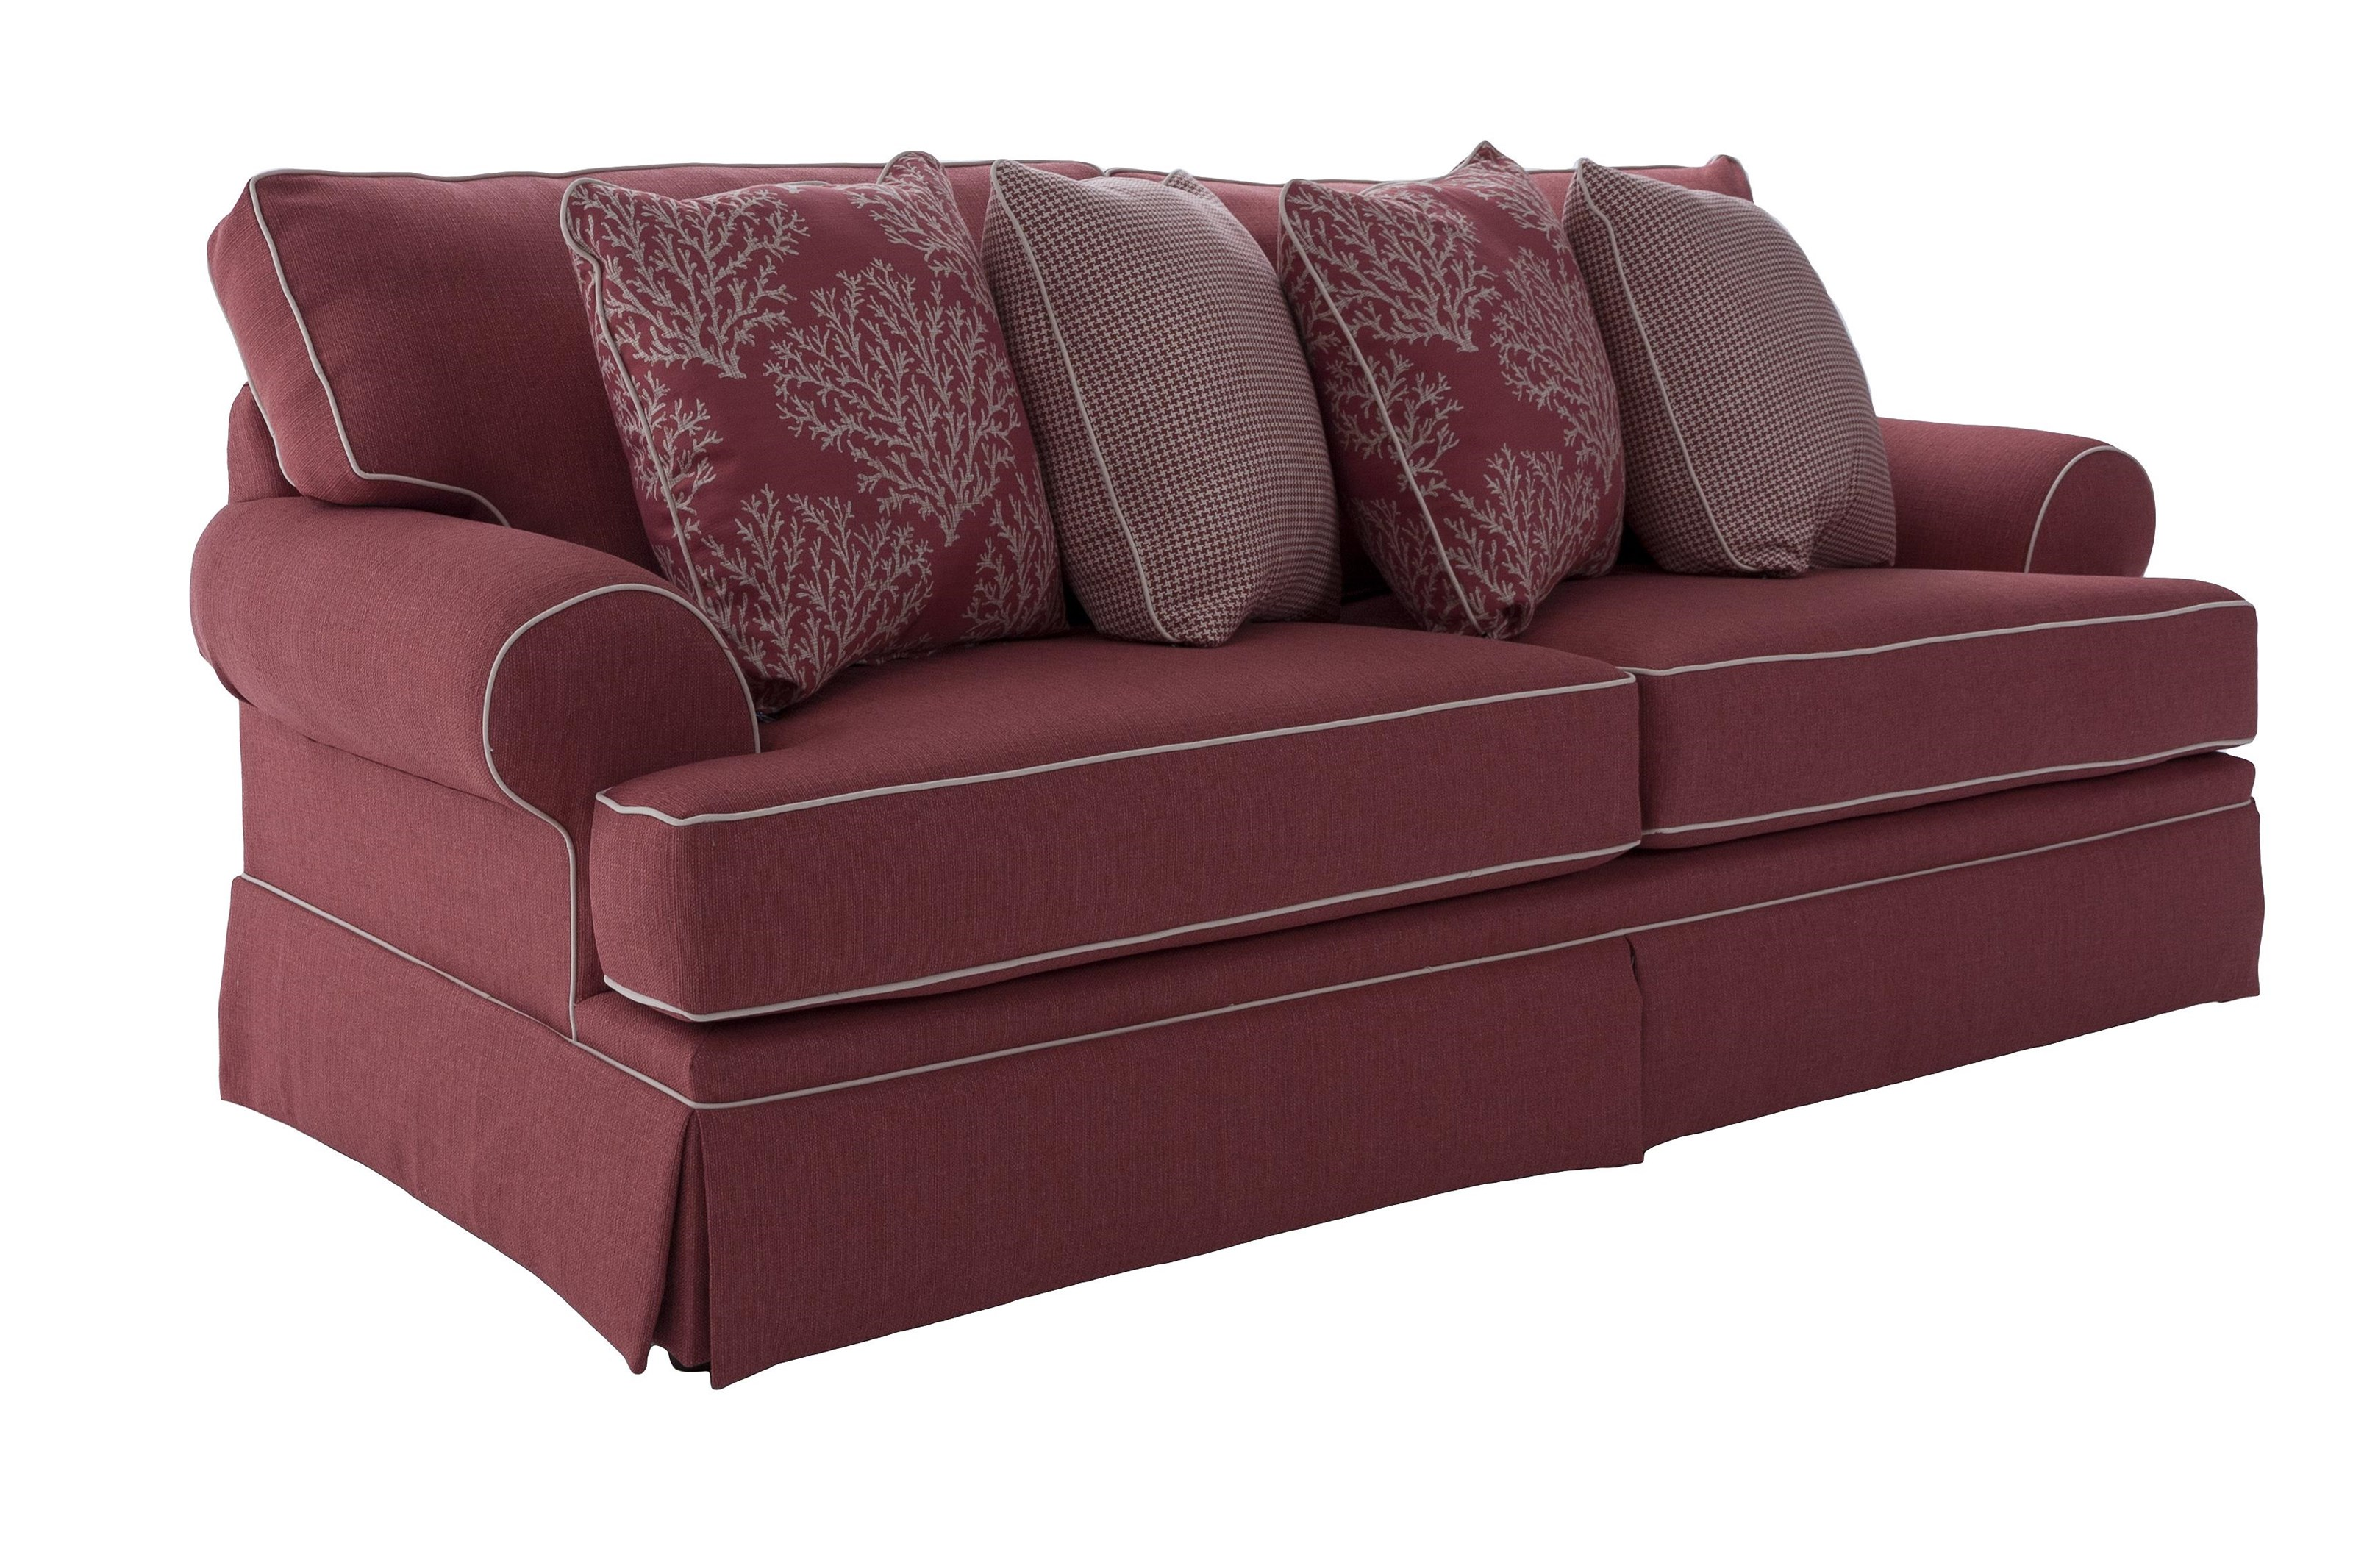 Broyhill Furniture Emily Casual Style Sofa - Item Number: 6262-3-Coral